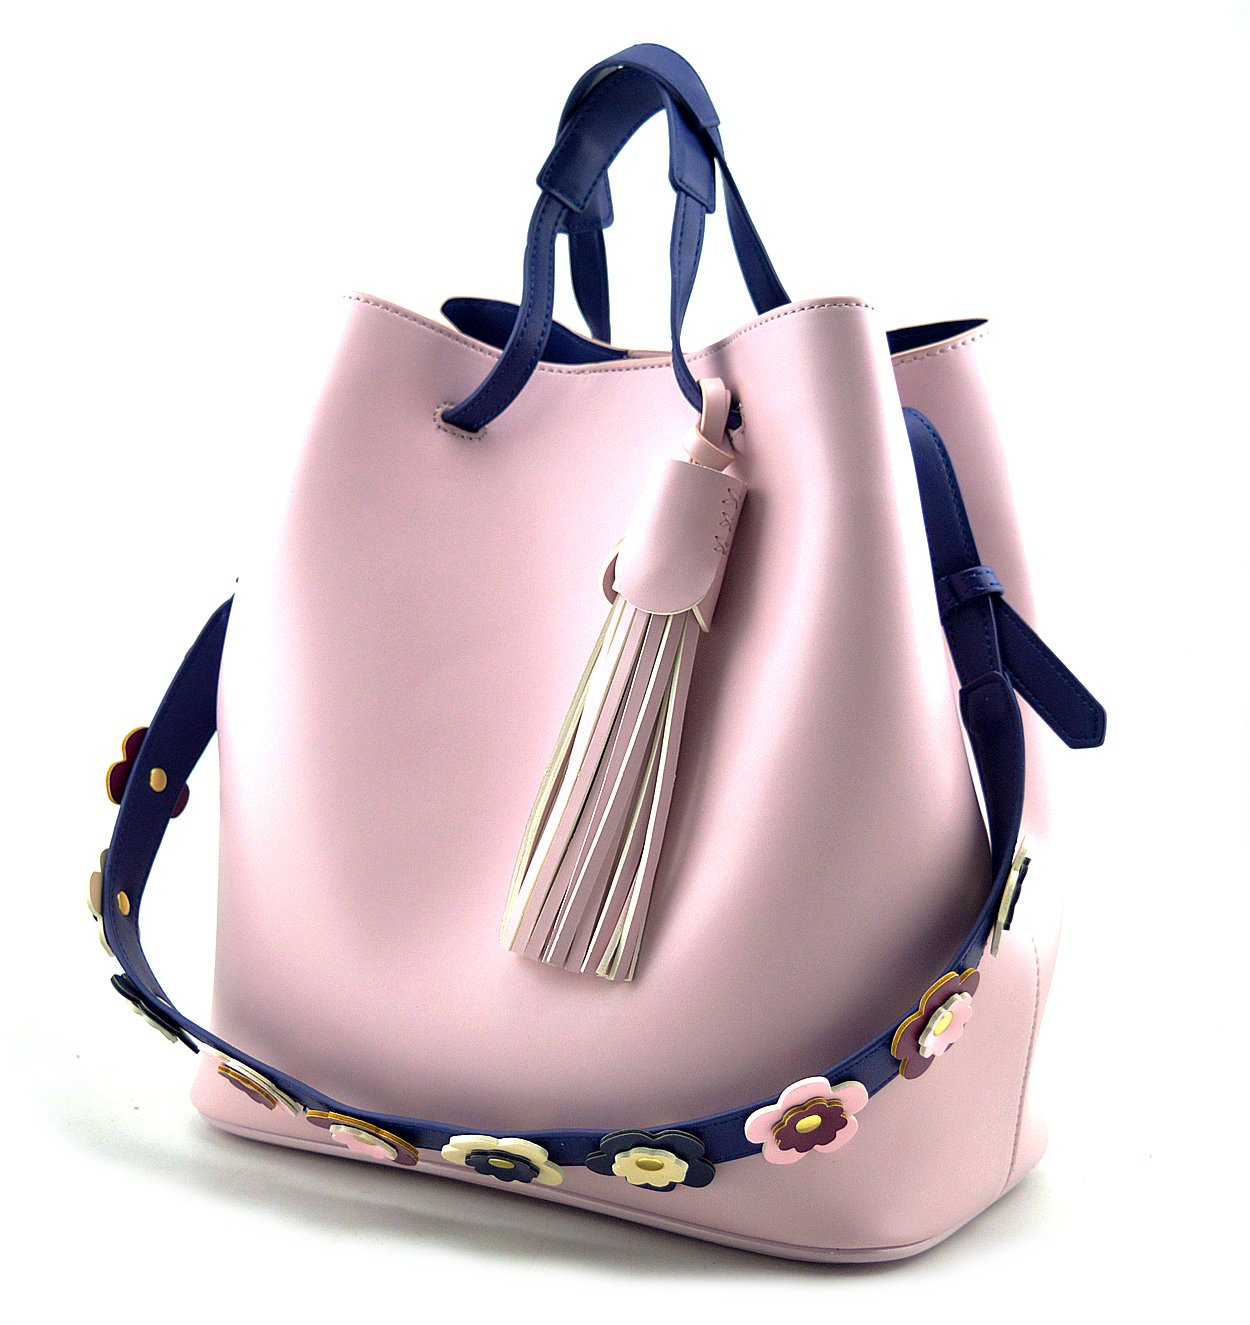 Mn&Sue Stylish Tassel Drawstring Bucket Hobo Lady Purse Casual Shoulder Tote Bag Set with Flower Strap (Pink)